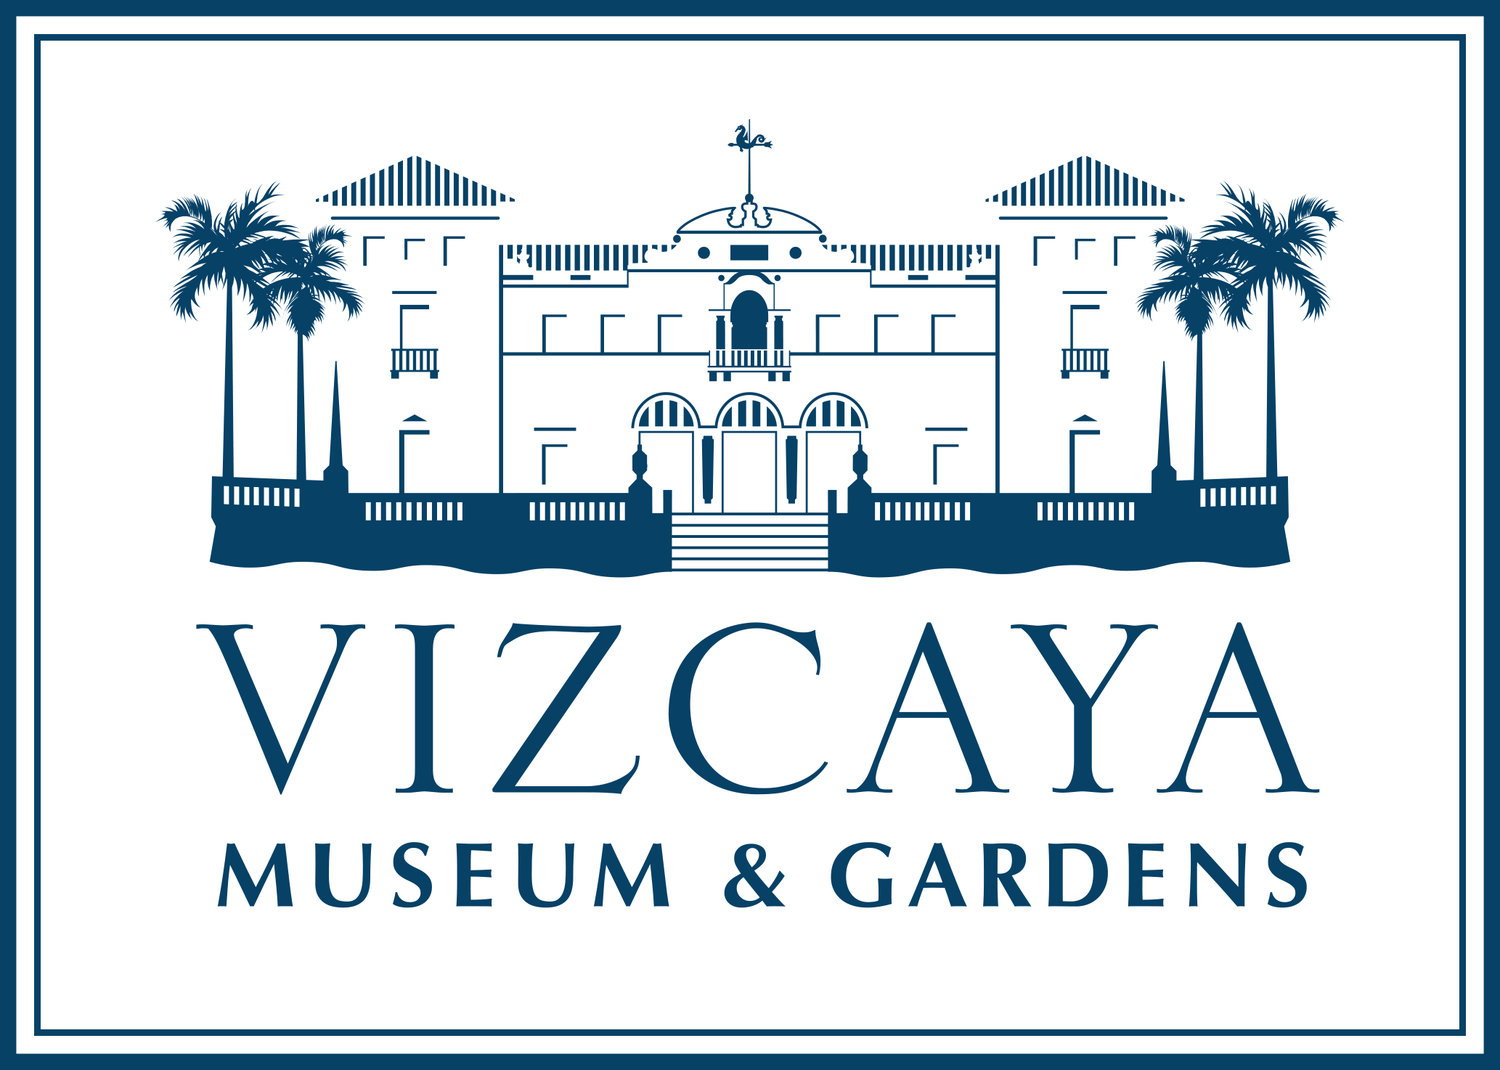 The Vizcaya Ball